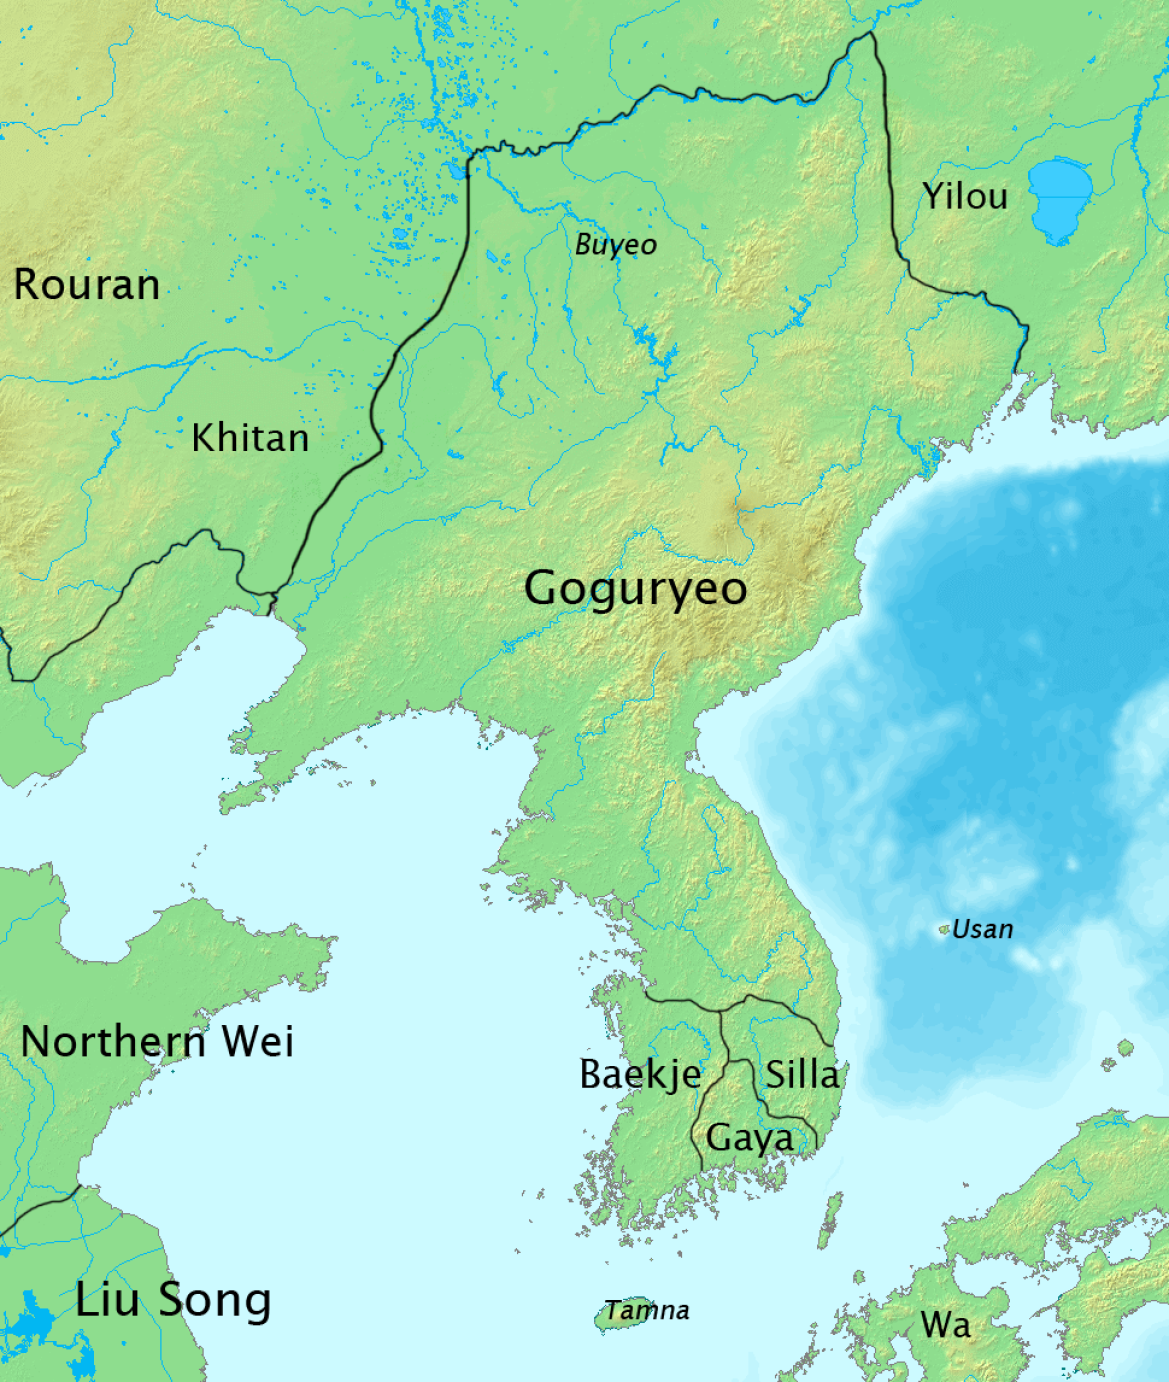 The Three Kingdoms of Korea - Goguryeo, Baekje and Silla (c. 5th century)